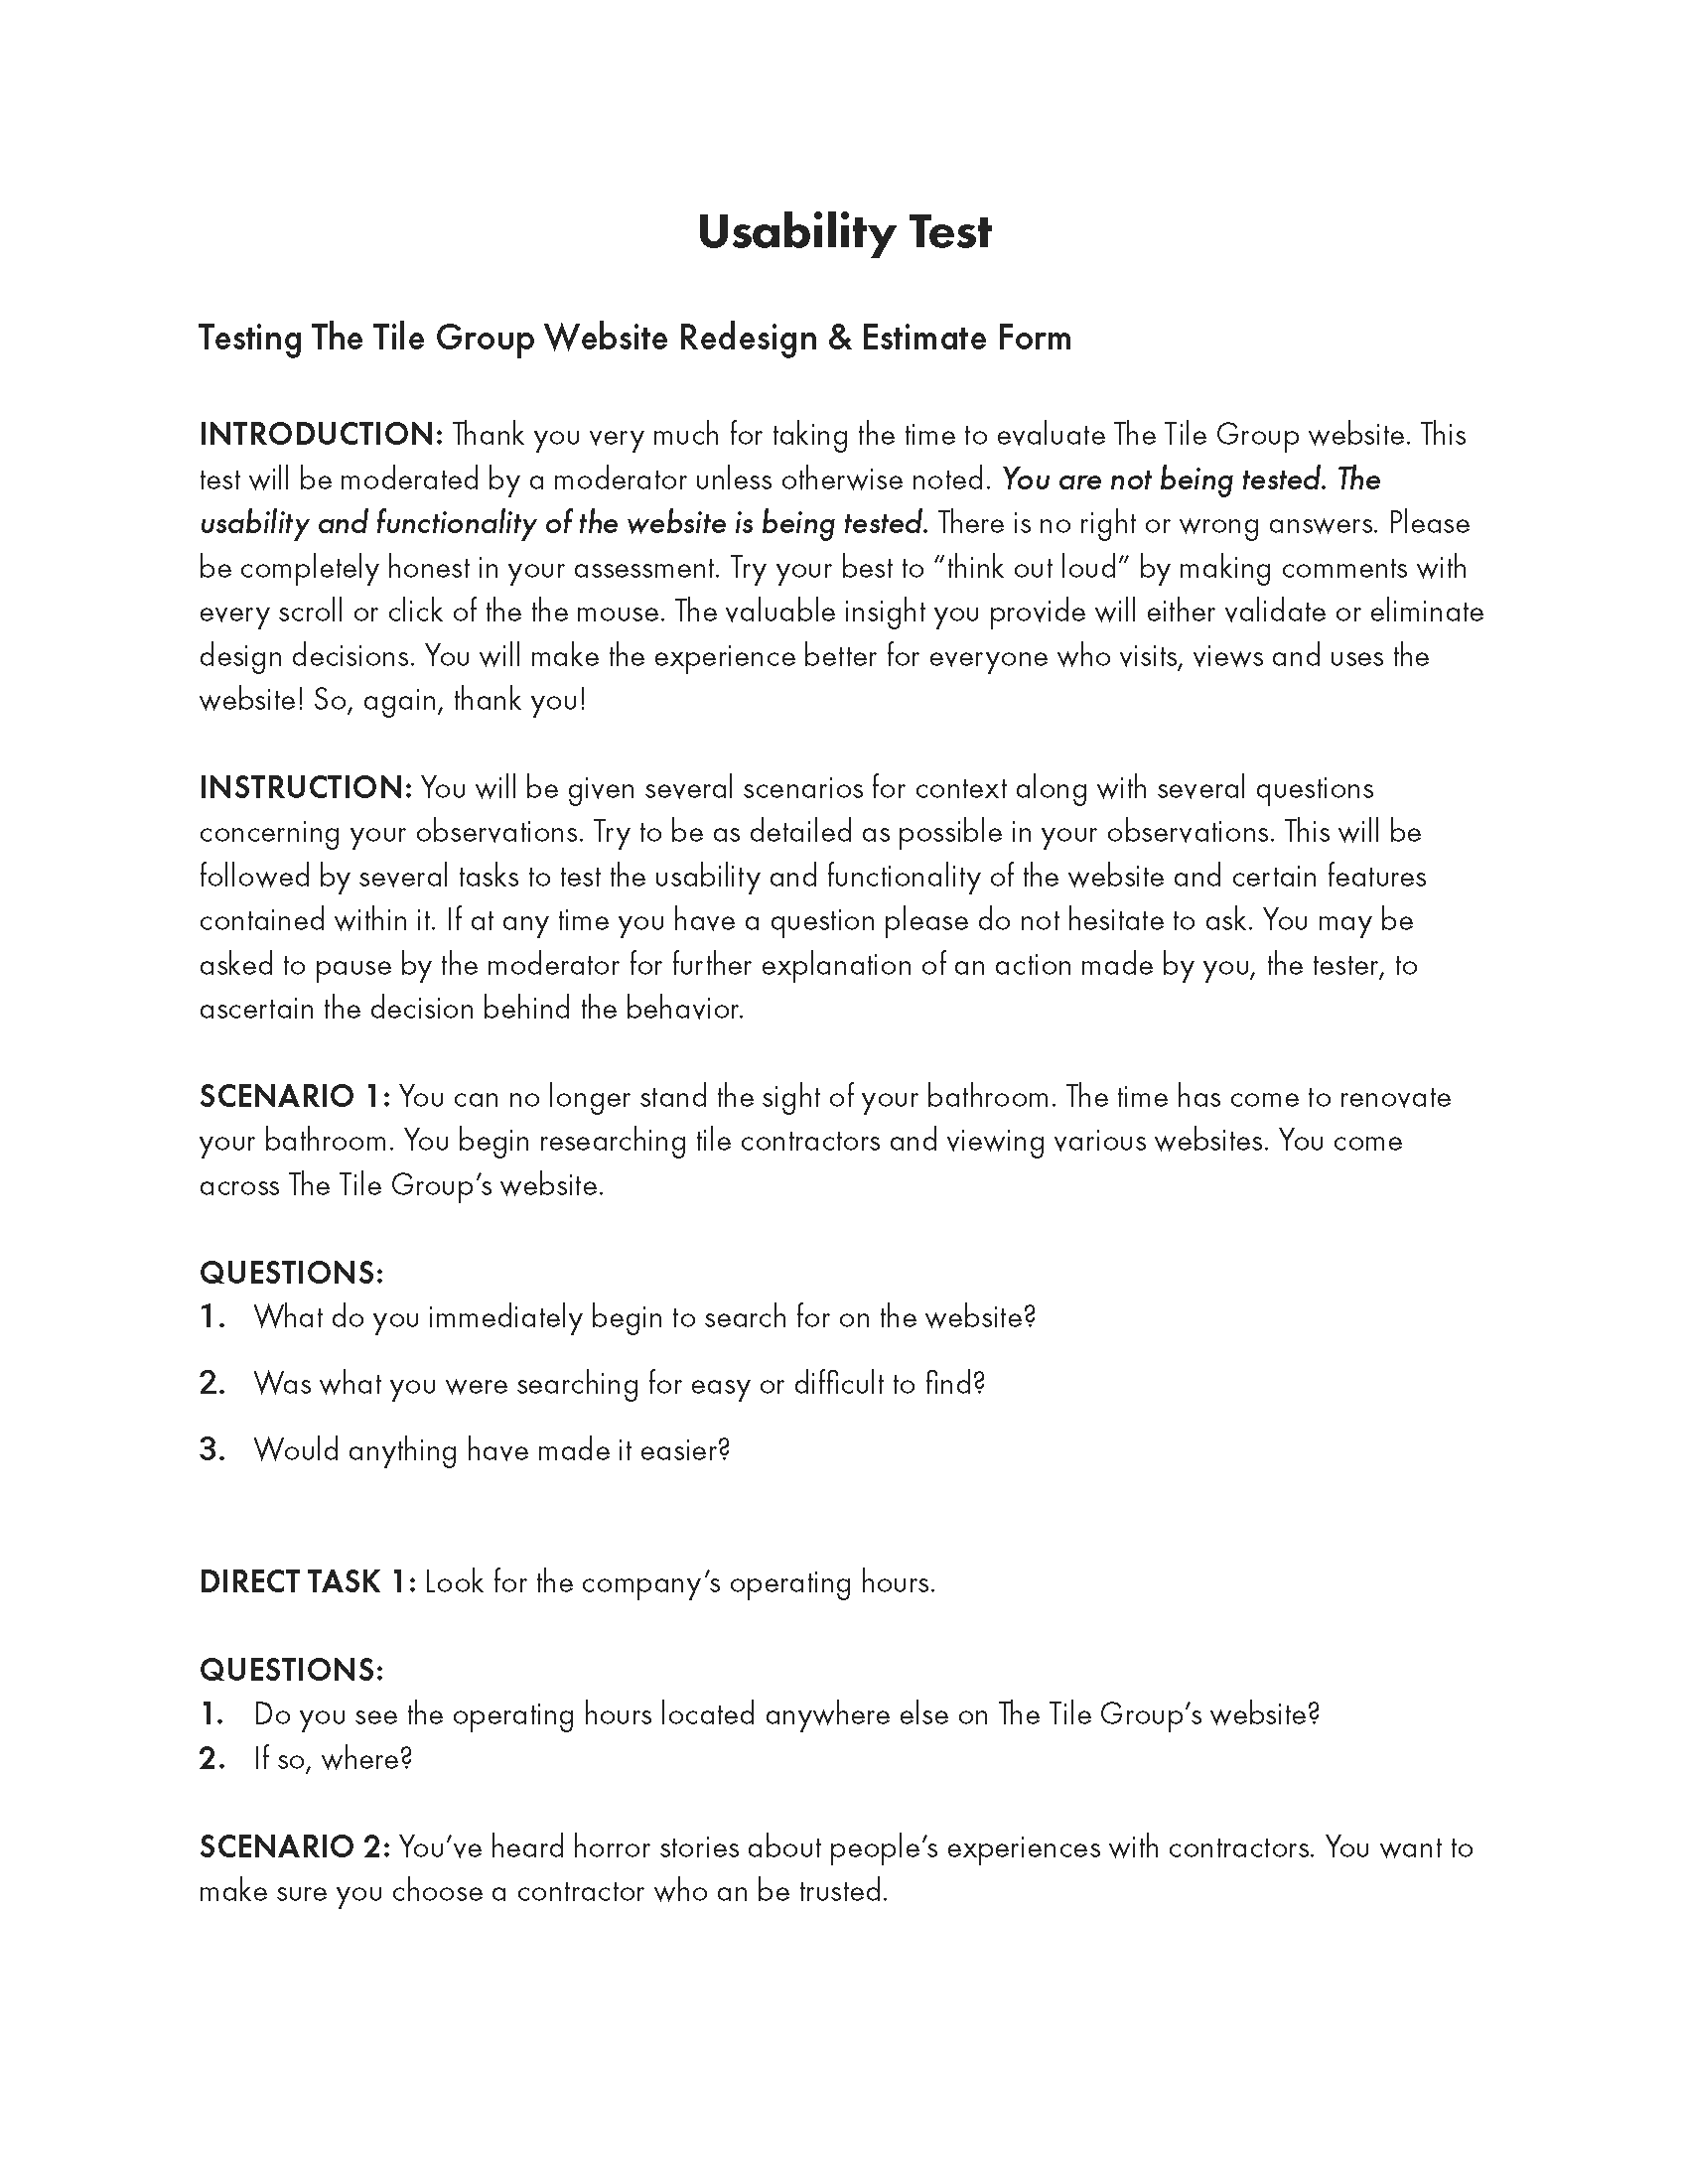 Usability Test Script page 1 of 3